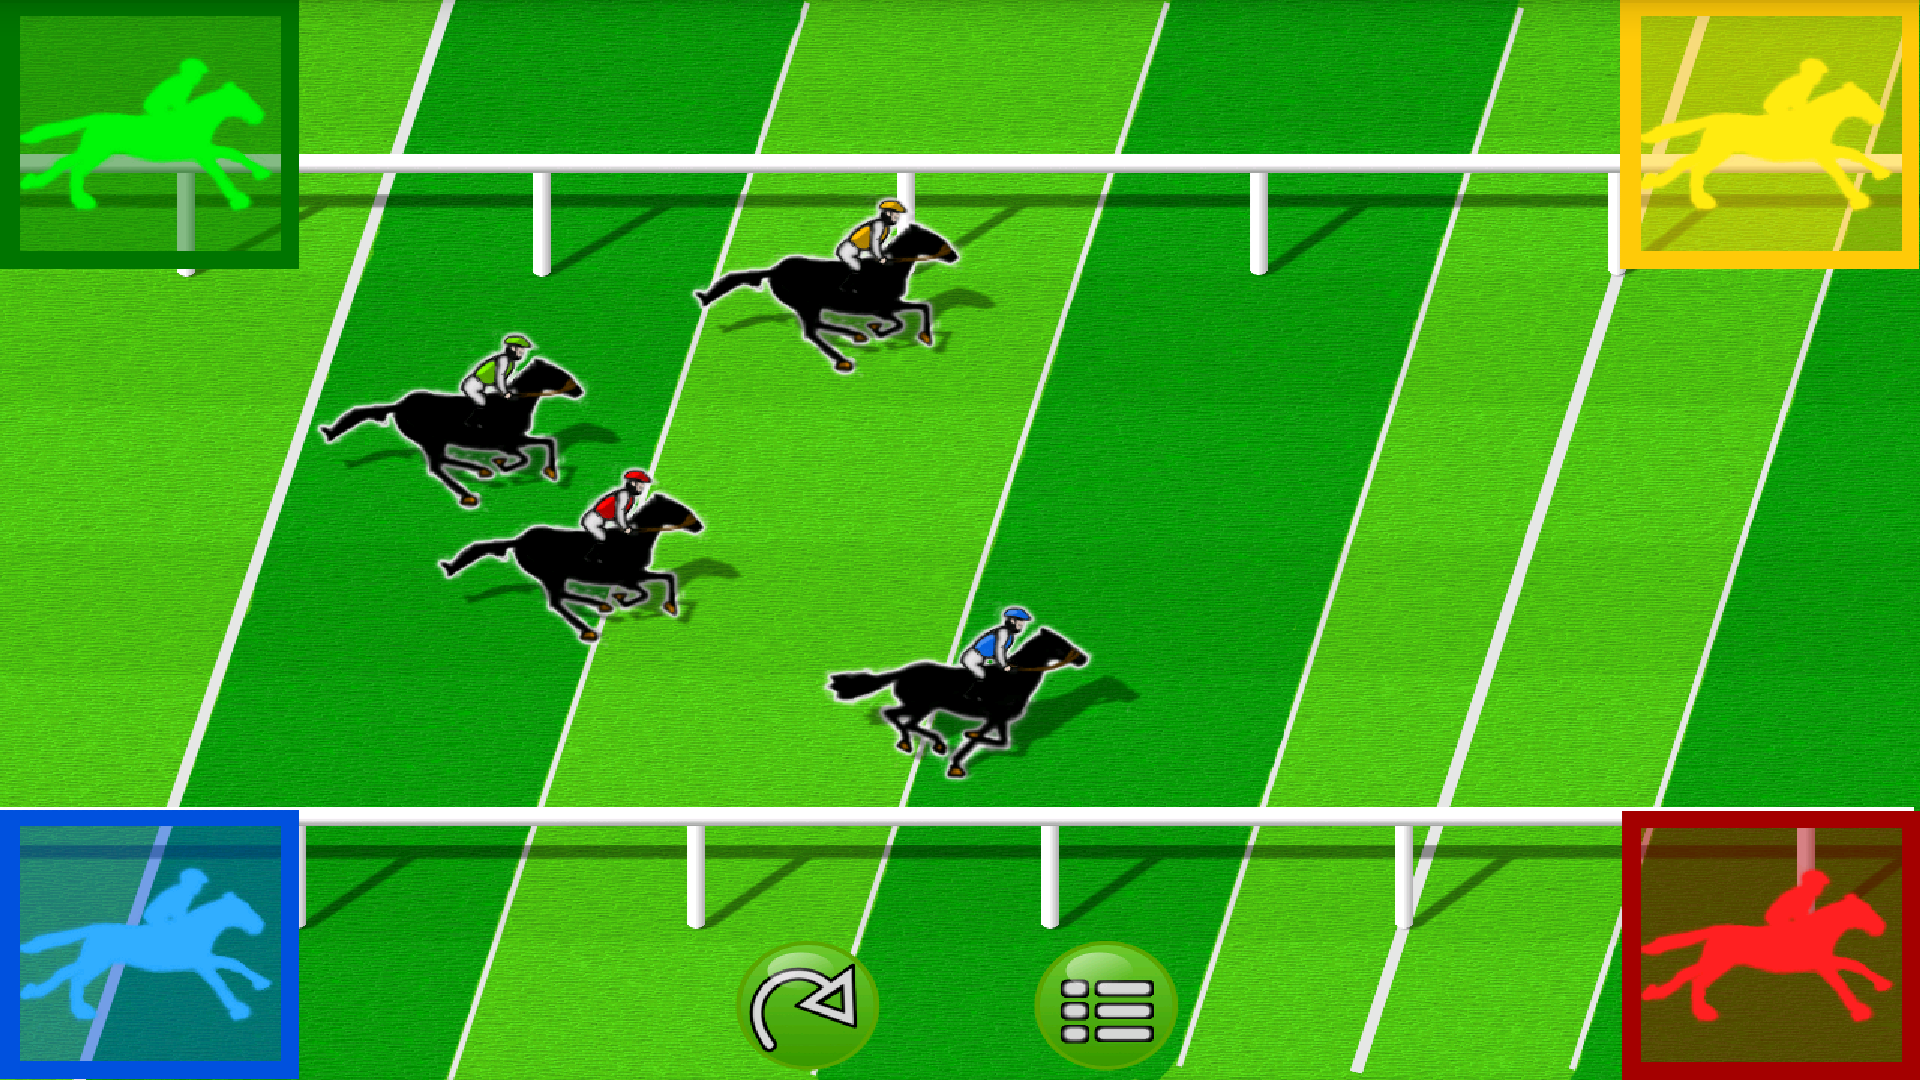 Horse race with 4 players